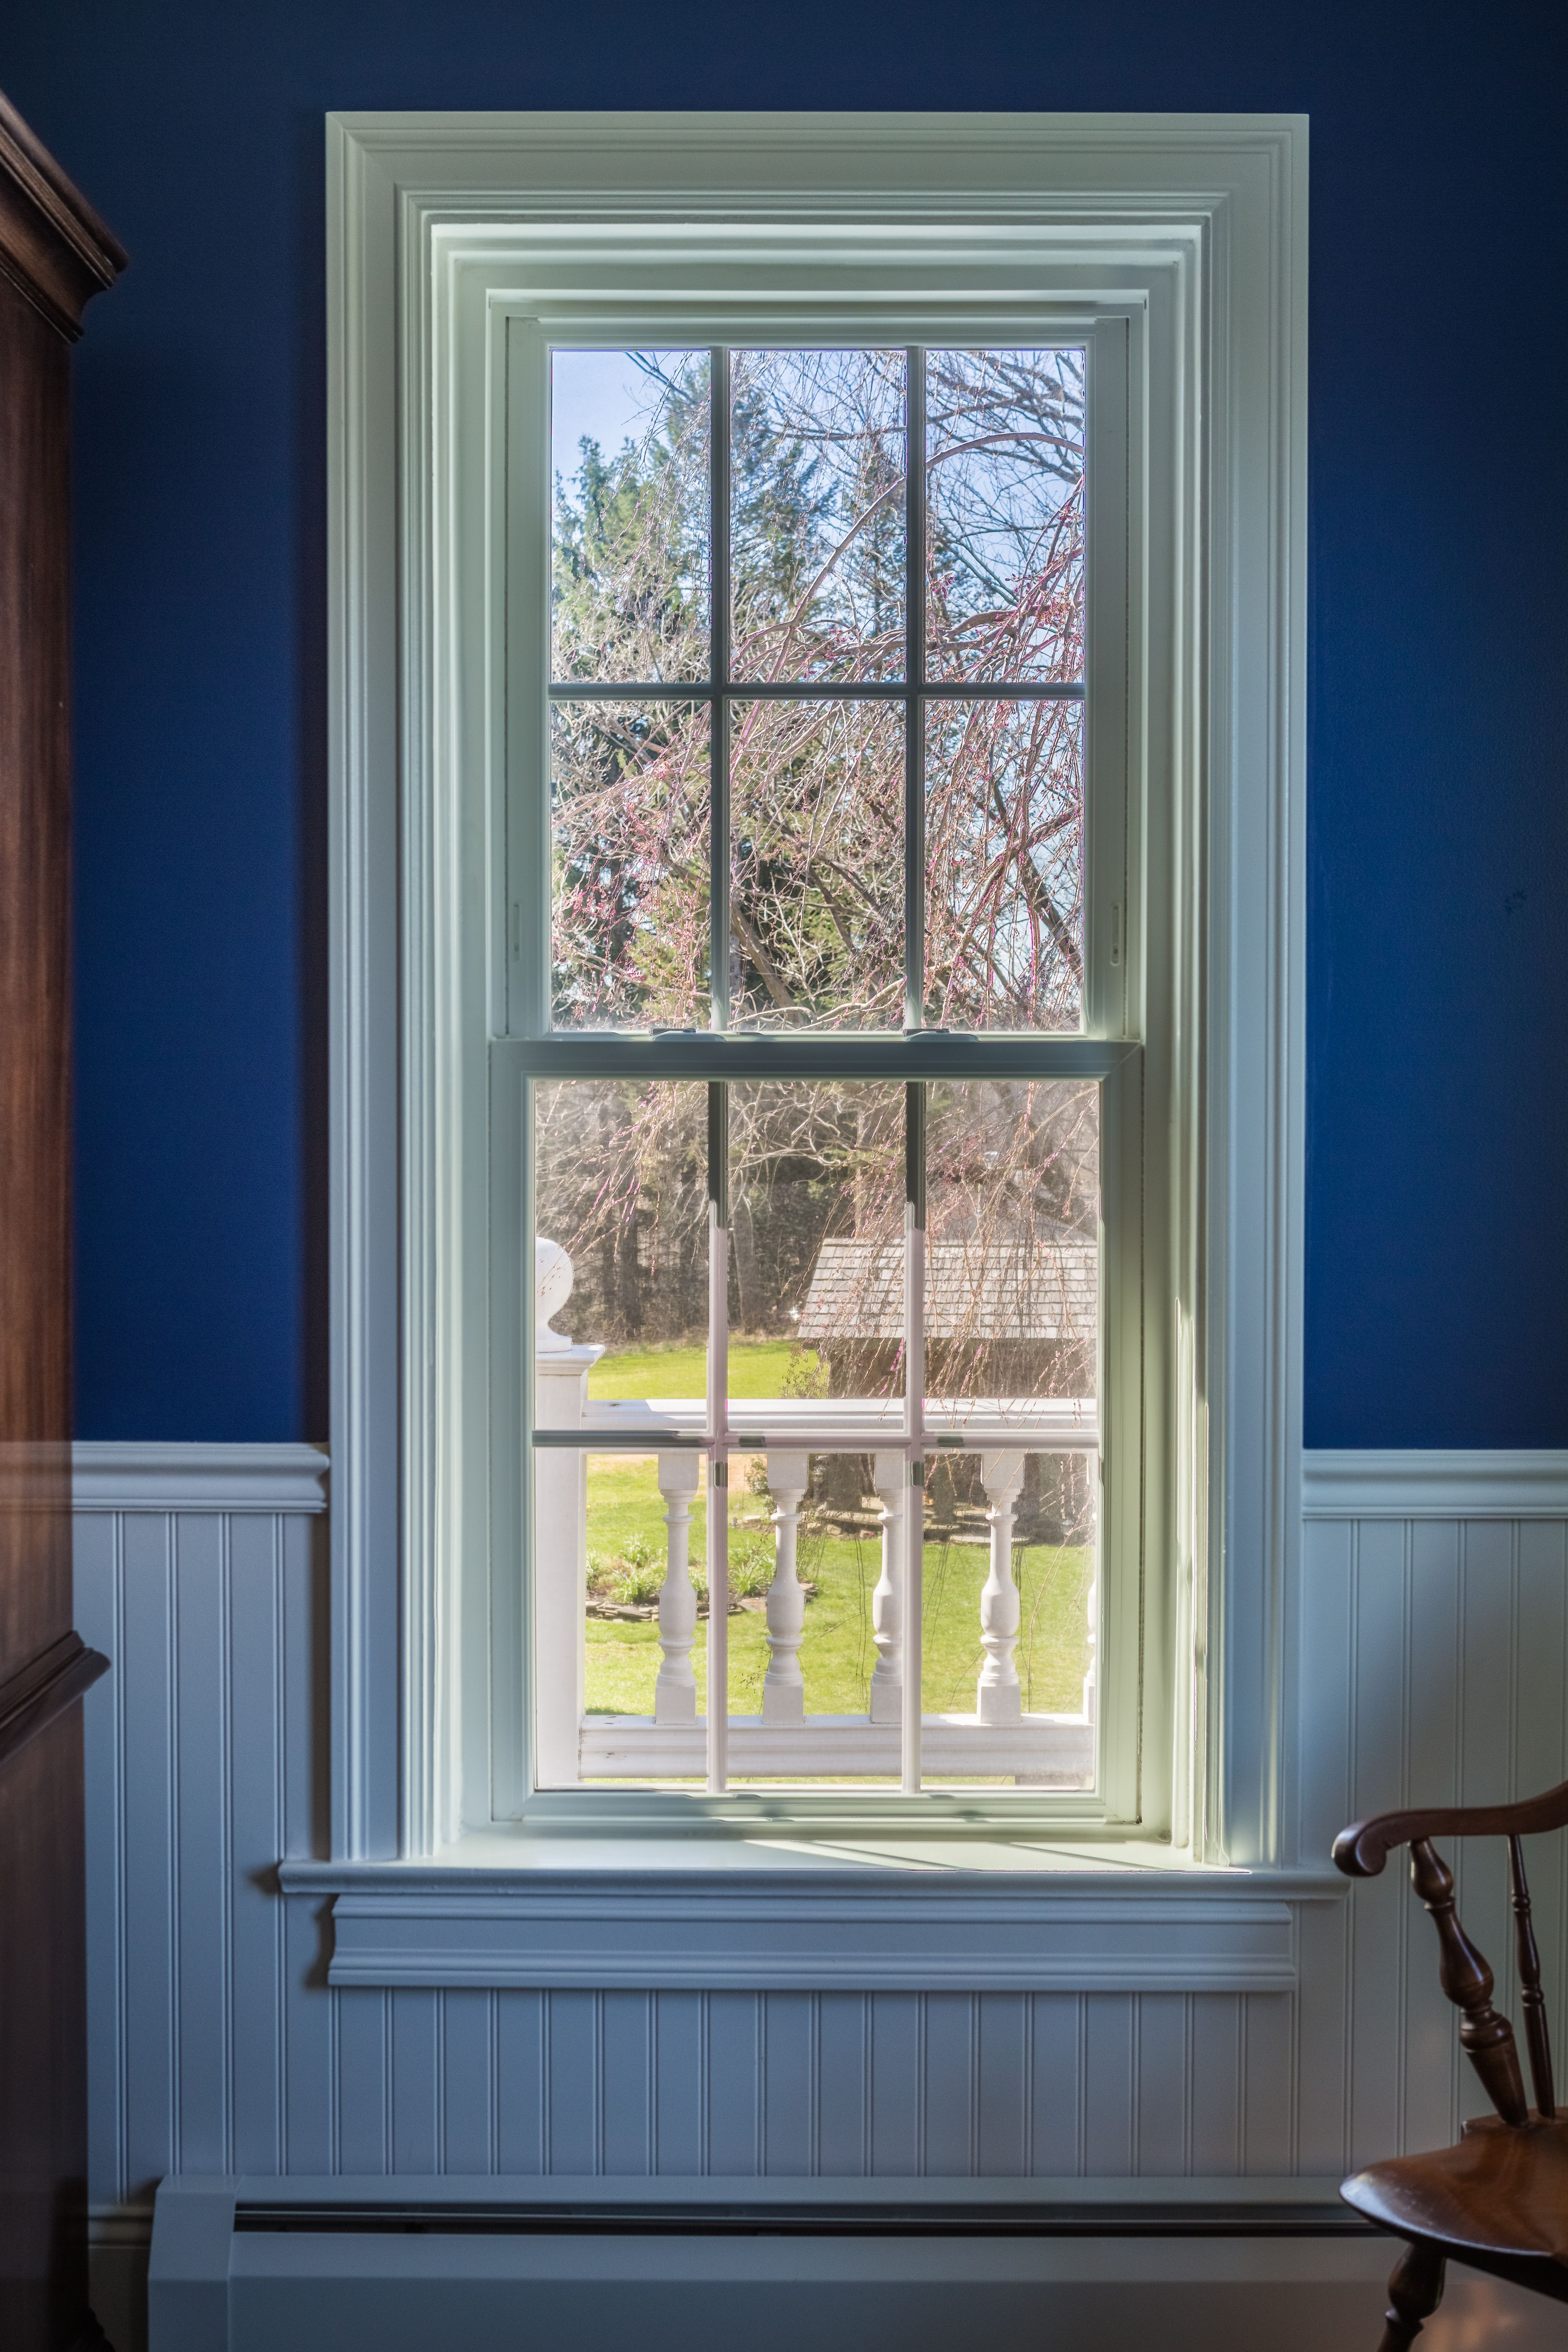 Signature Gold Double Hung Vinyl Replacement Windows Double Hung Windows